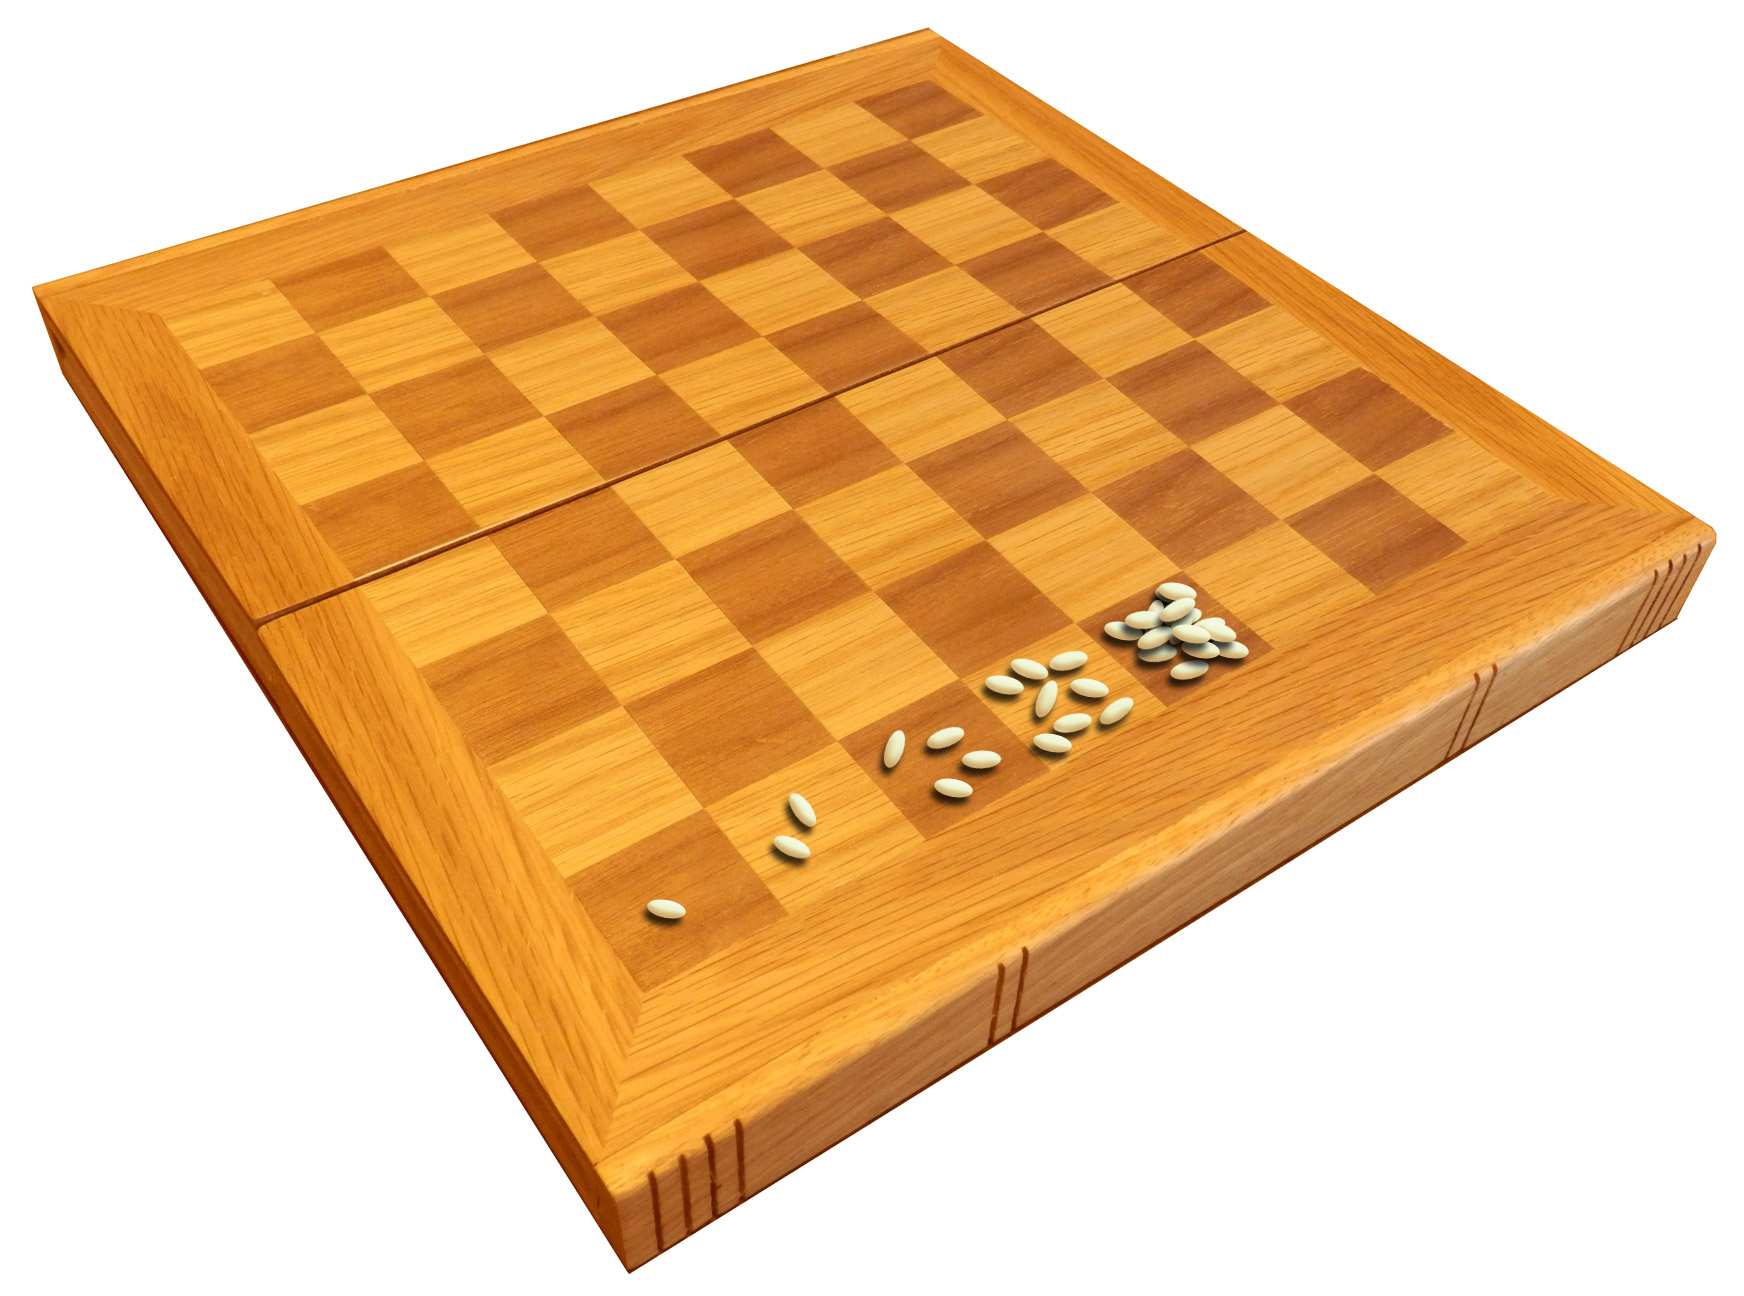 Wheat and chessboard problem - Wikipedia